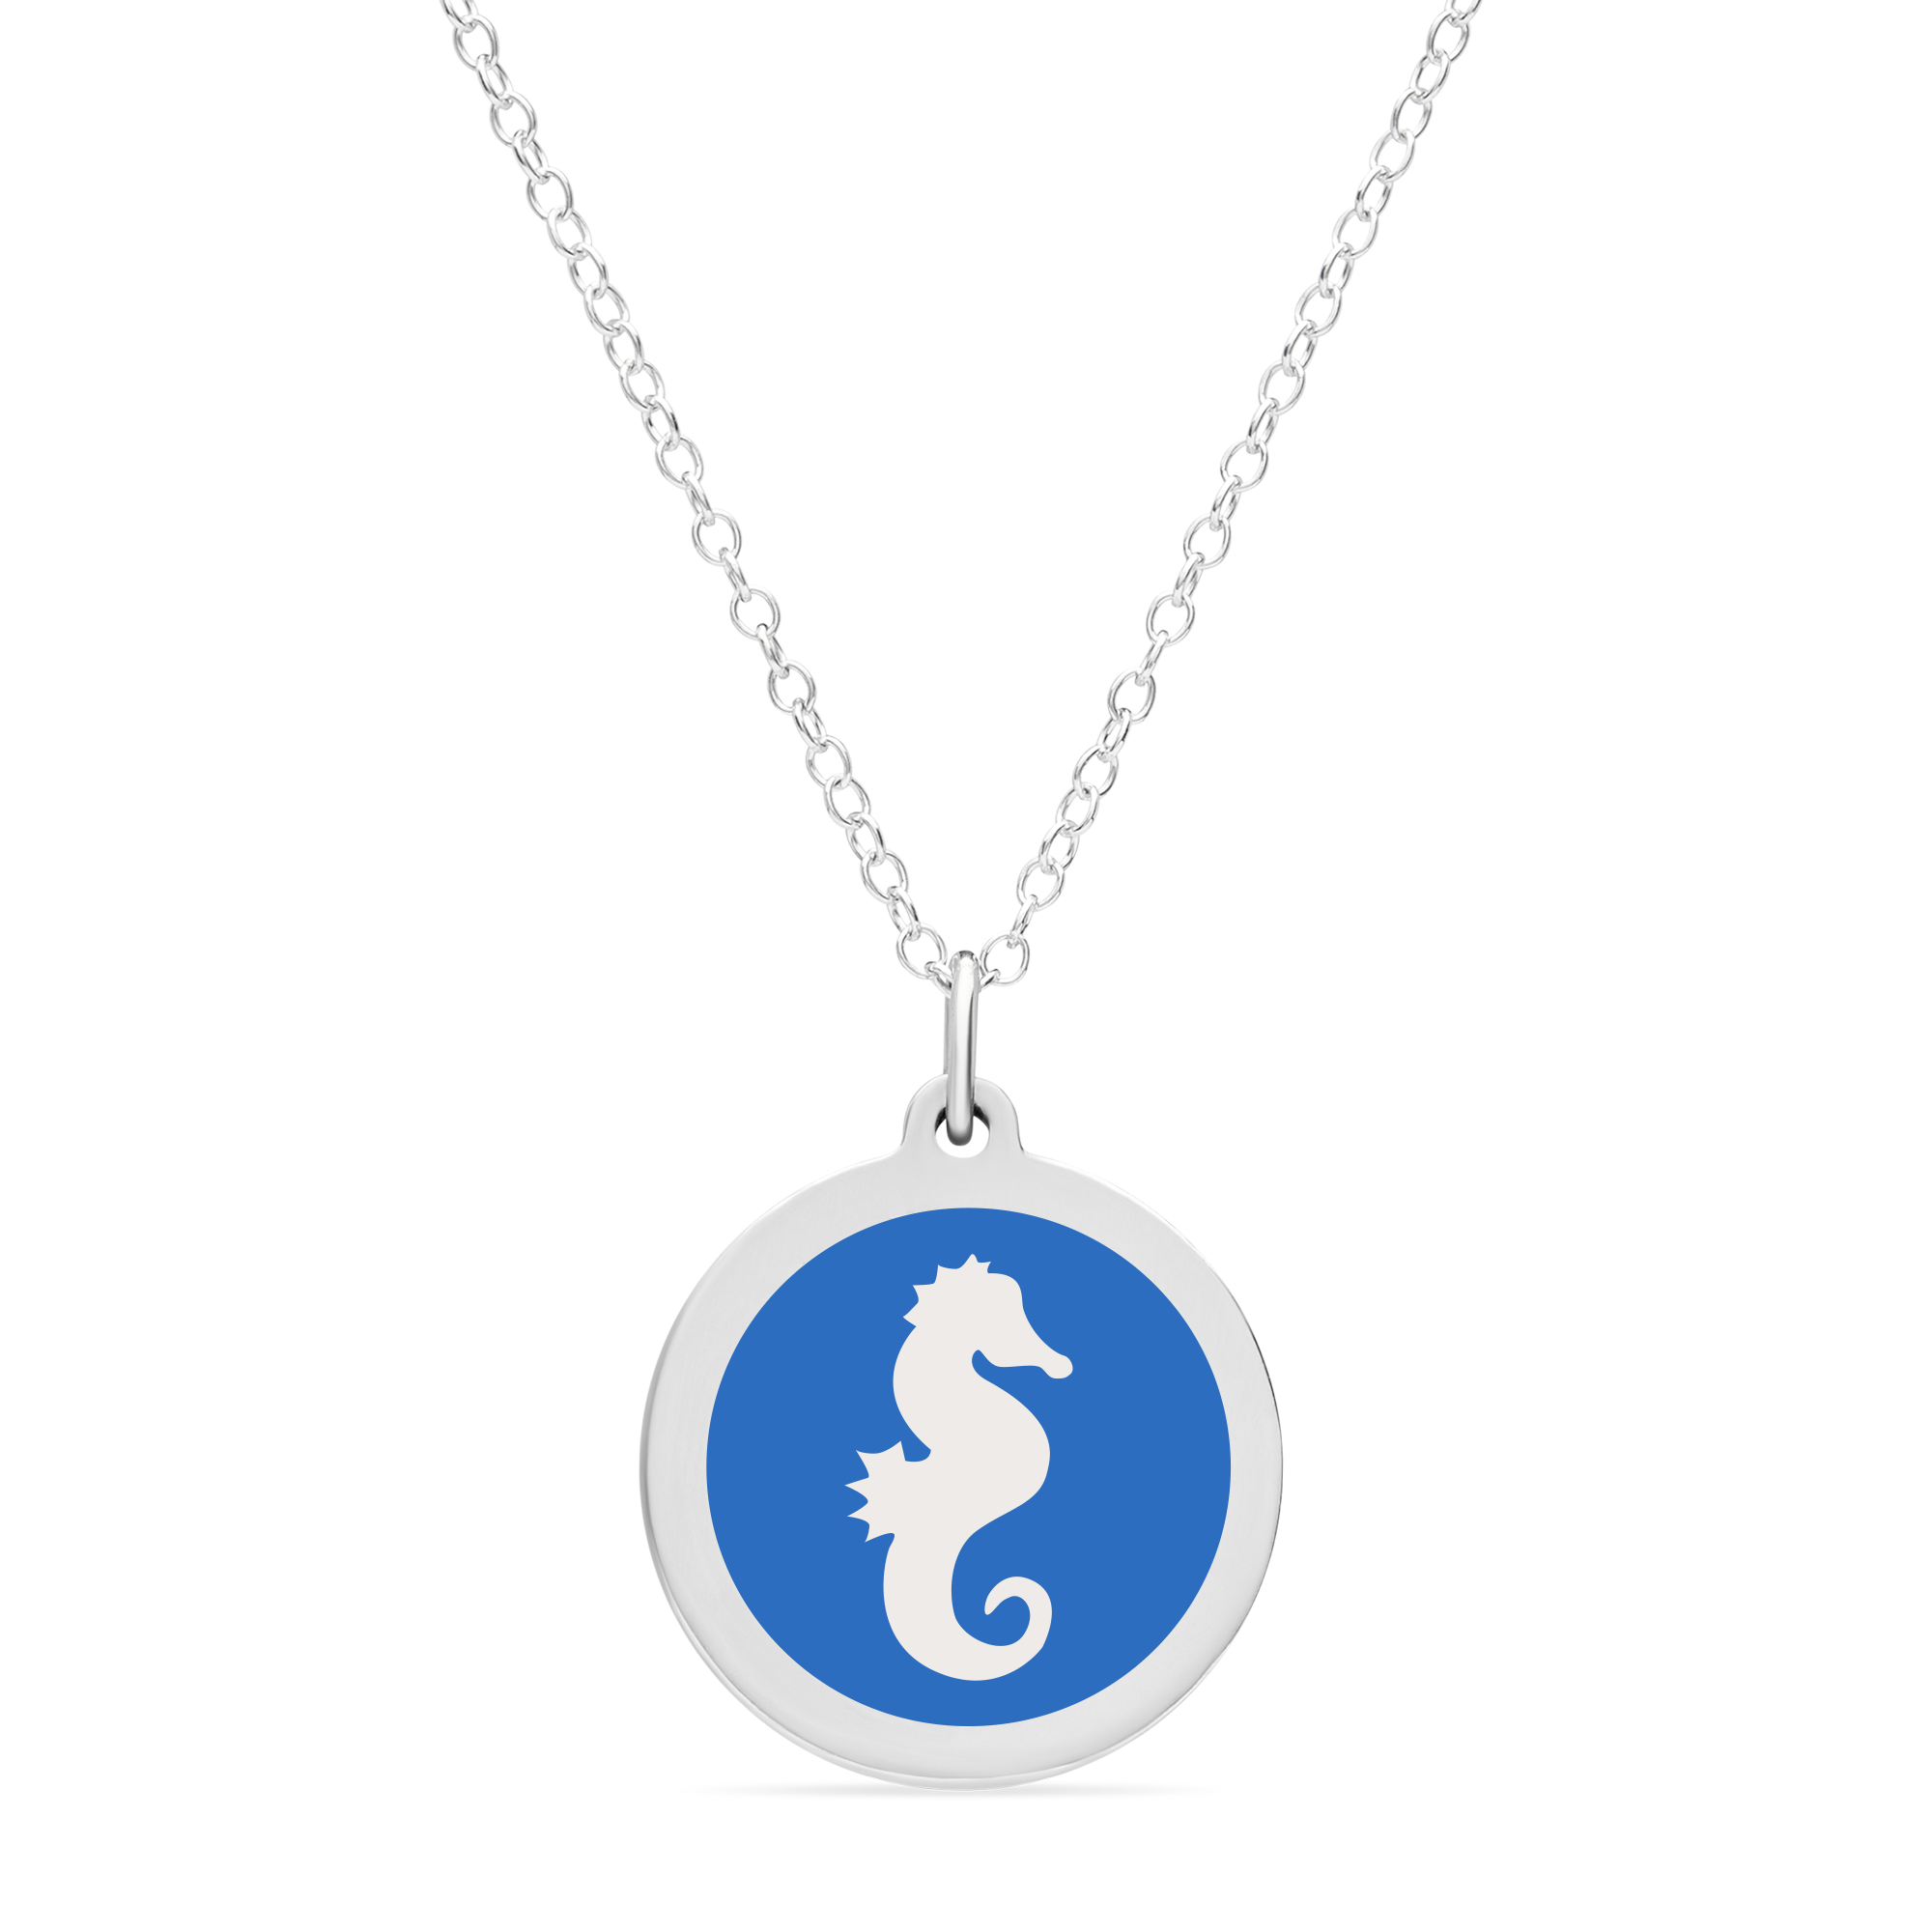 ORIGINAL SEAHORSE CHARM in sterling silver with rhodium plate